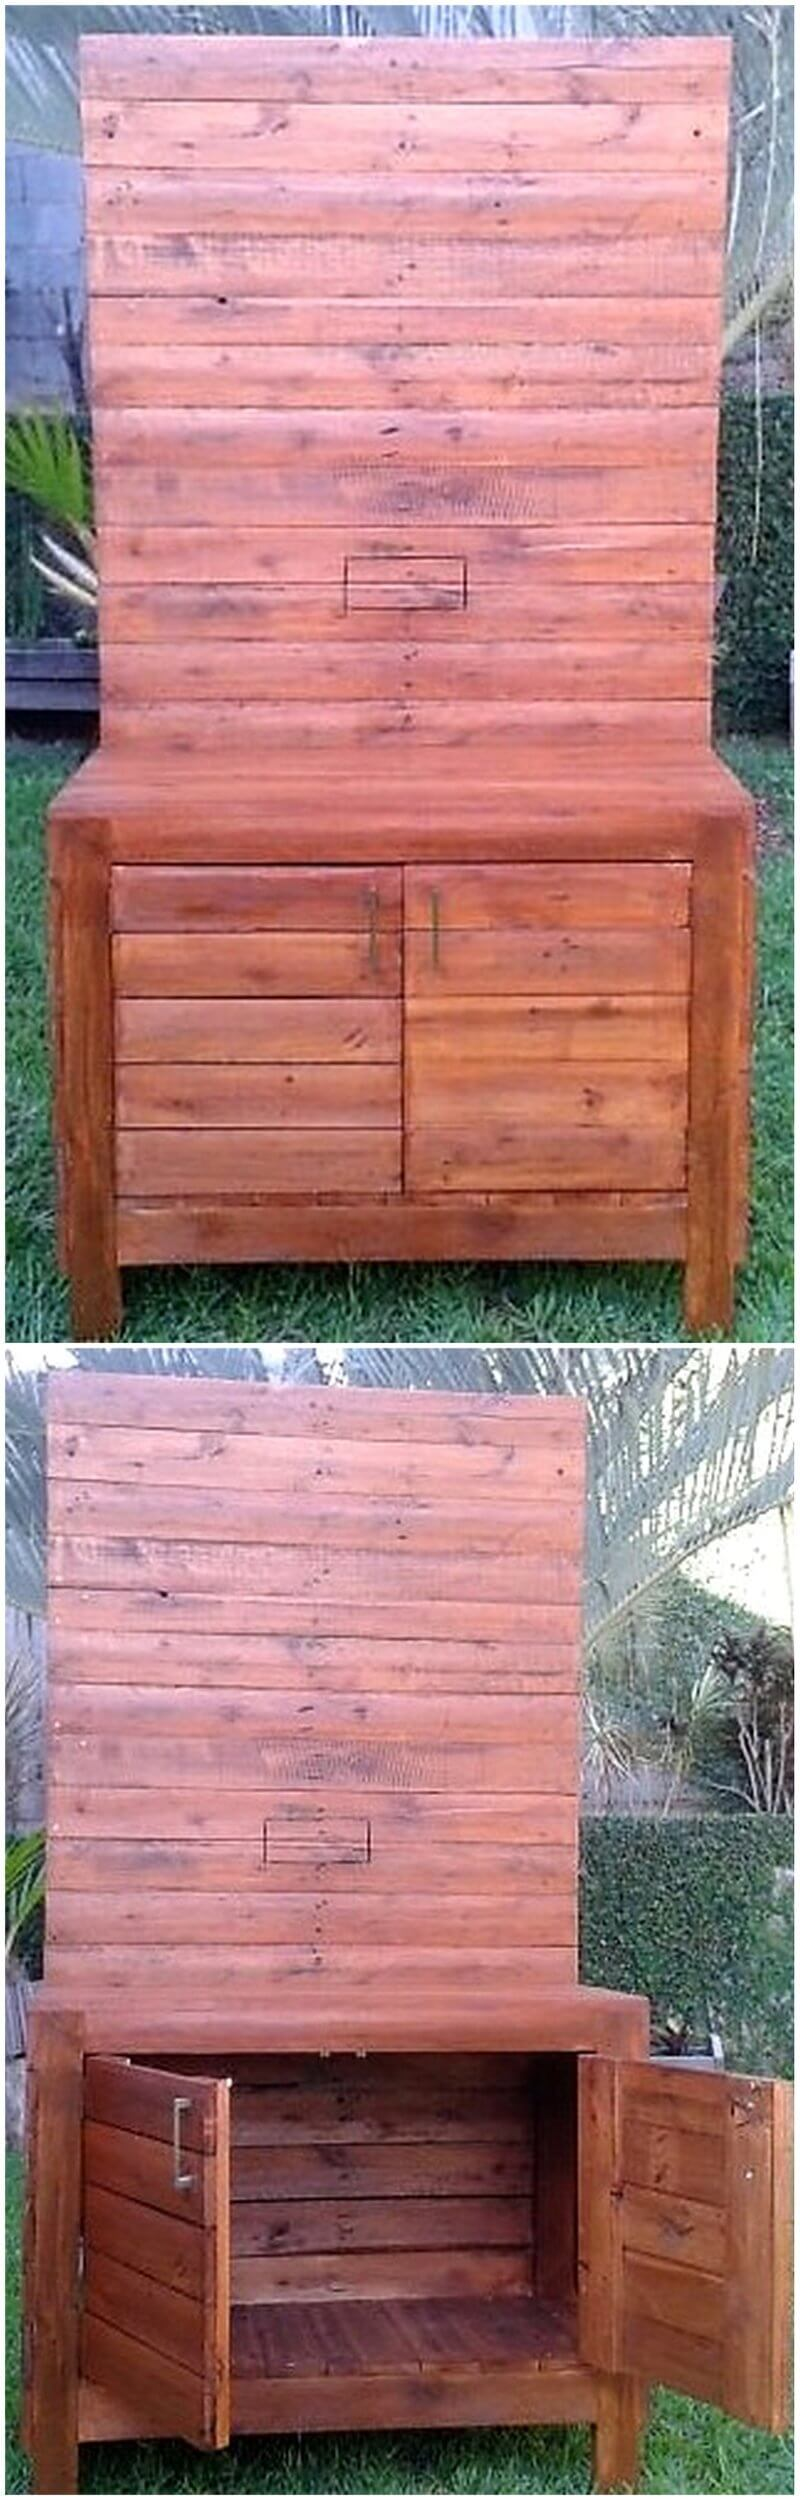 pallet tv stand project